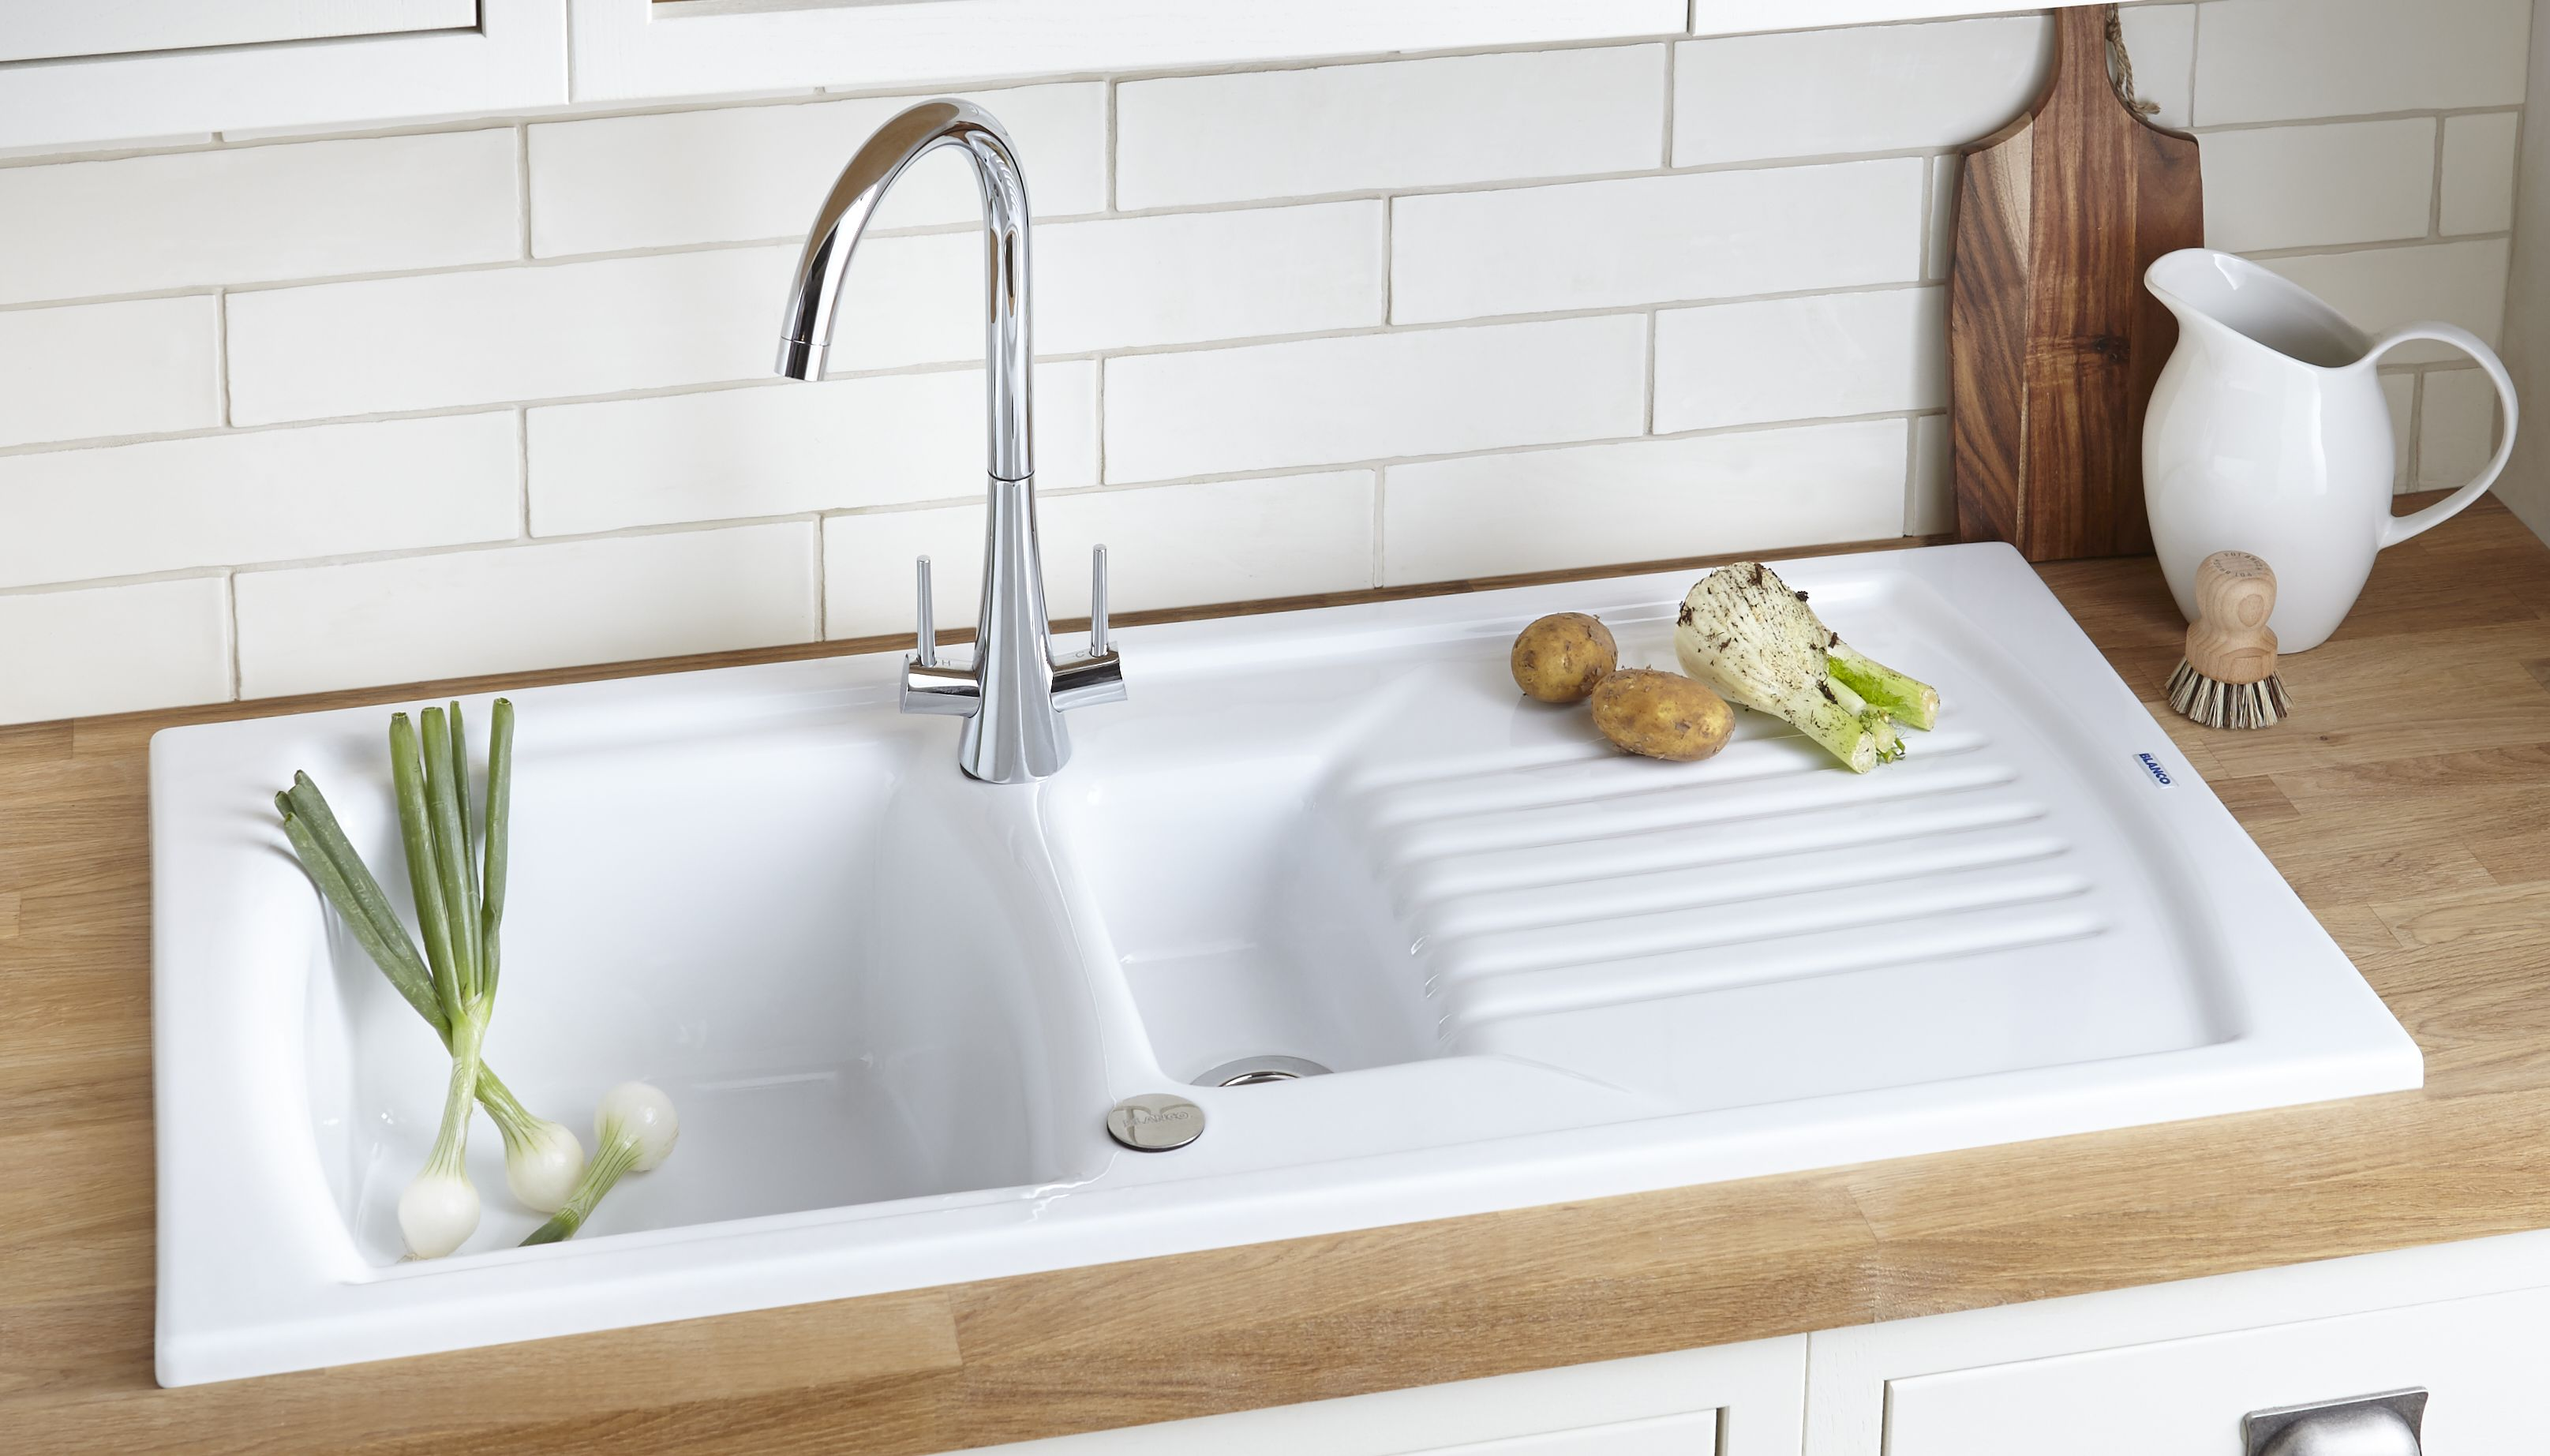 buyer's guide to kitchen sinks | help & ideas | diy at b&q